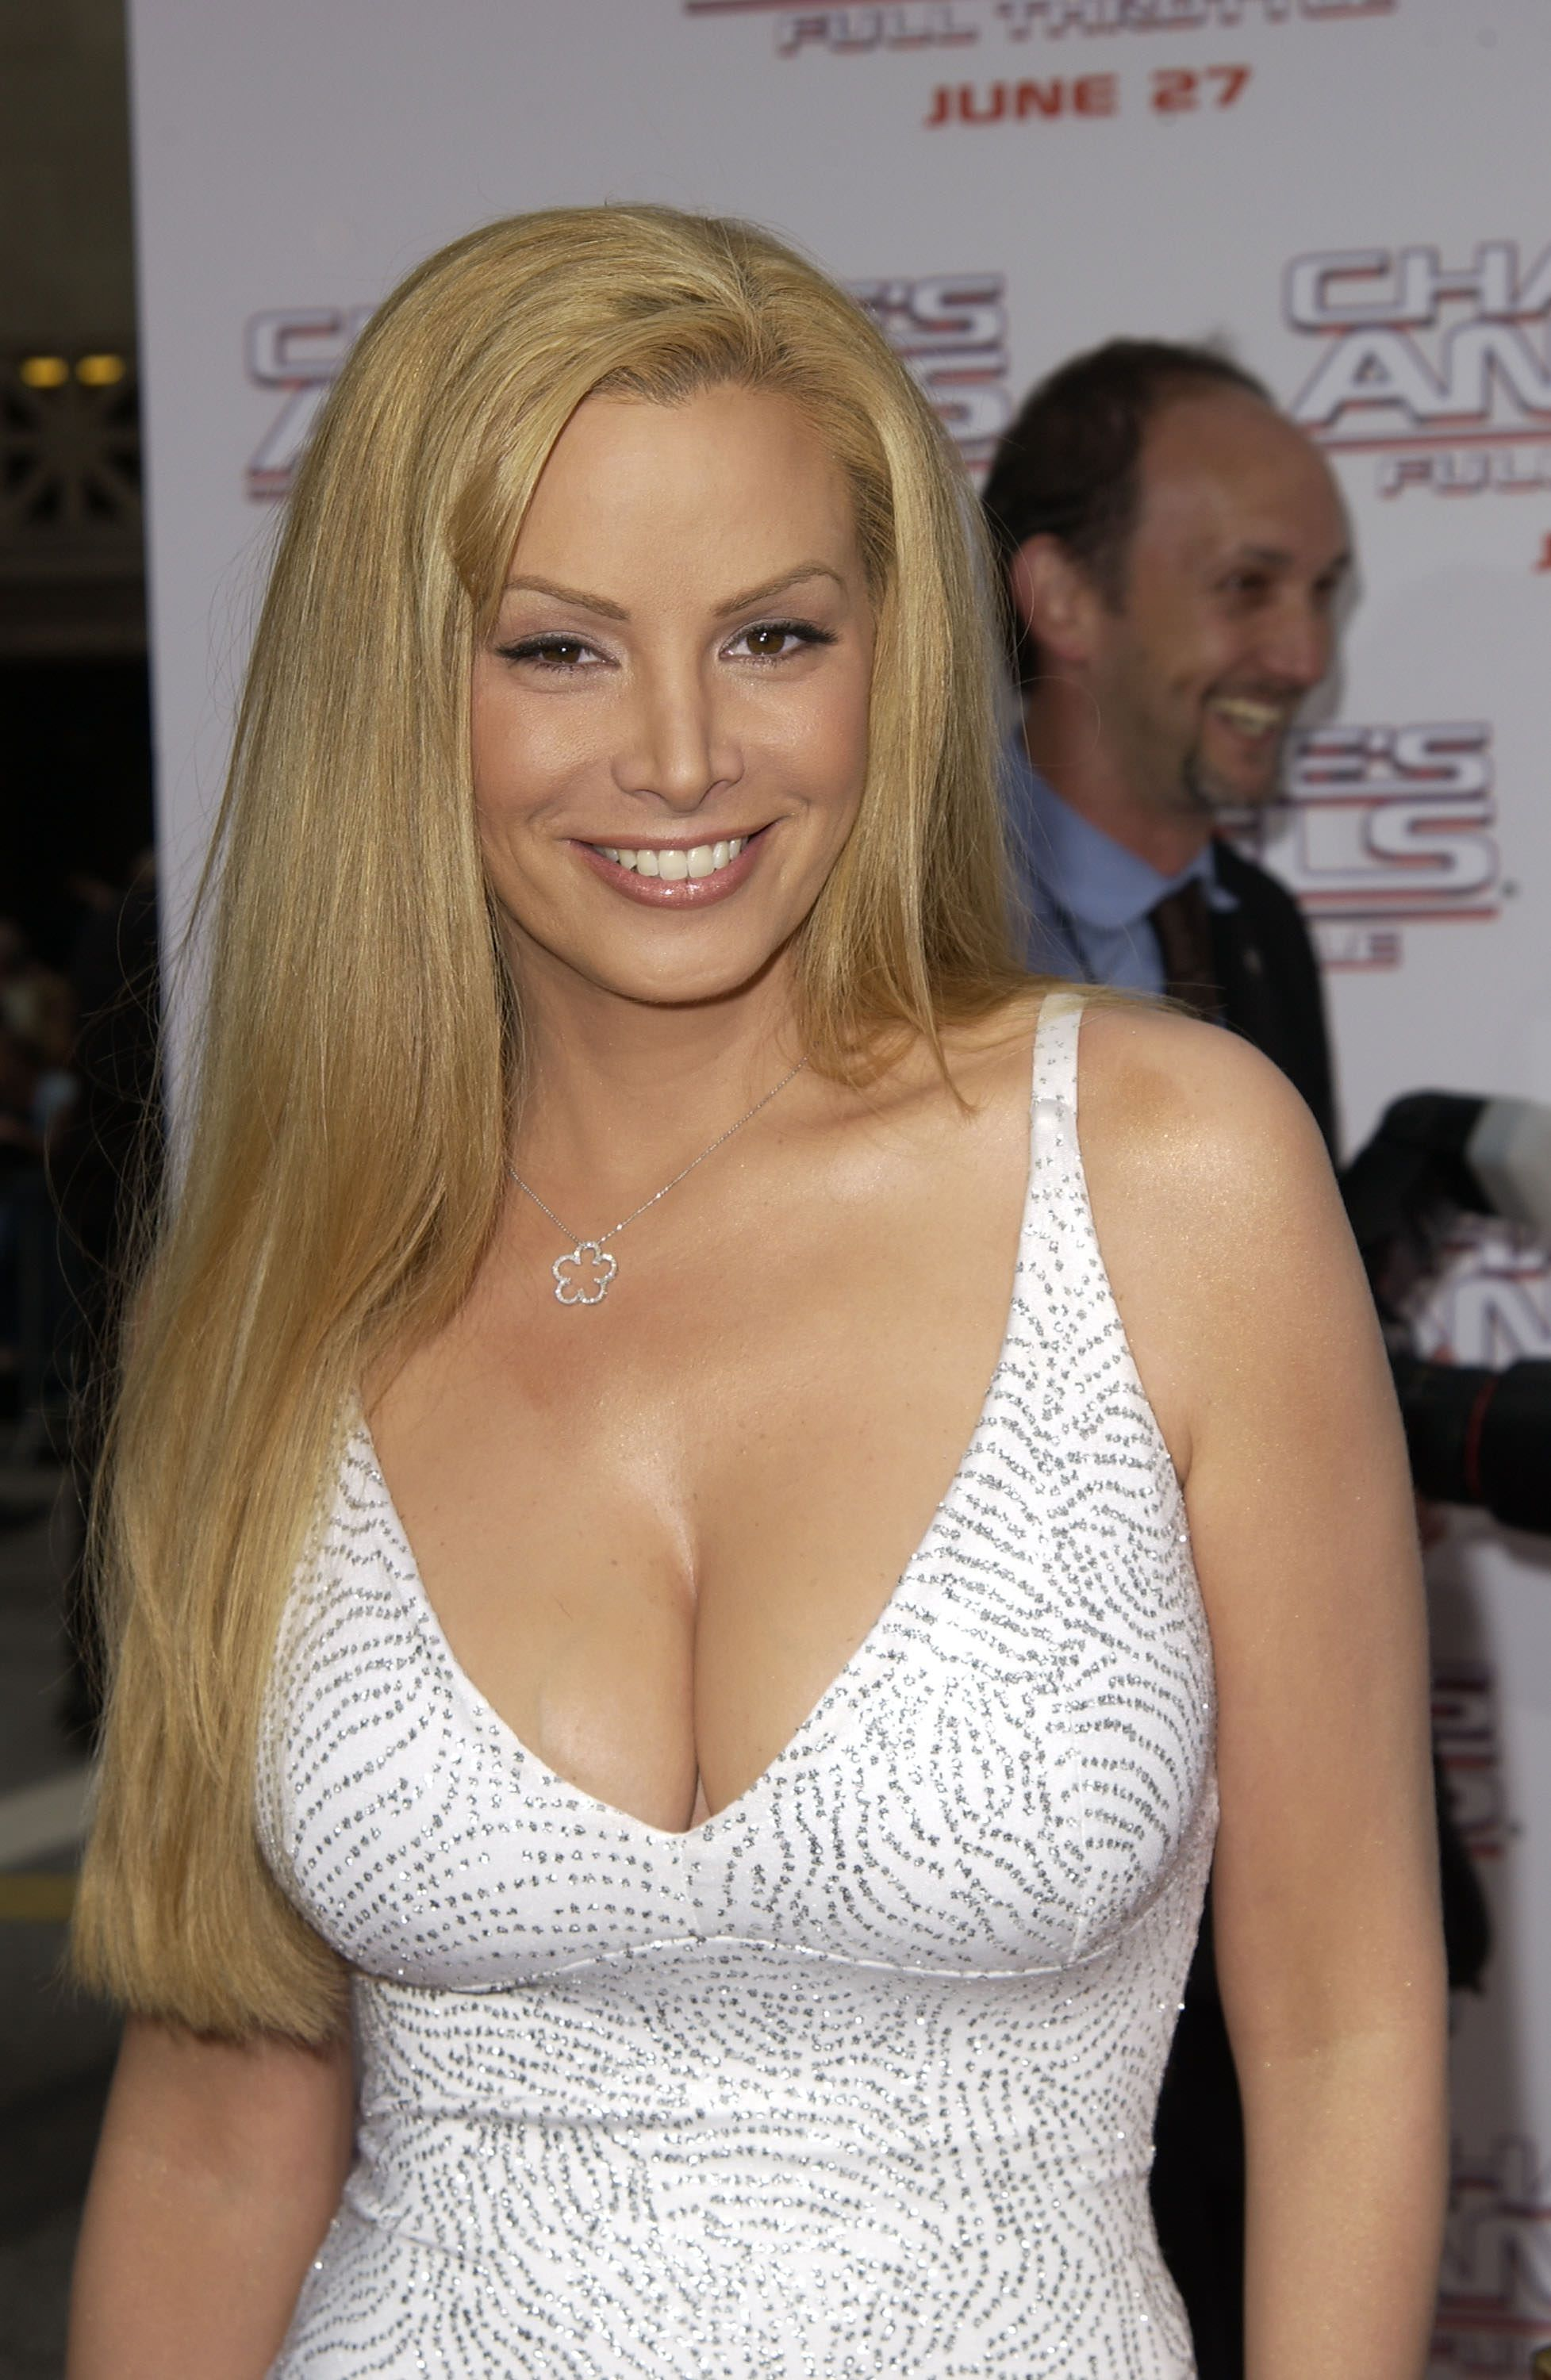 Thought differently, blinkx cindy margolis nude